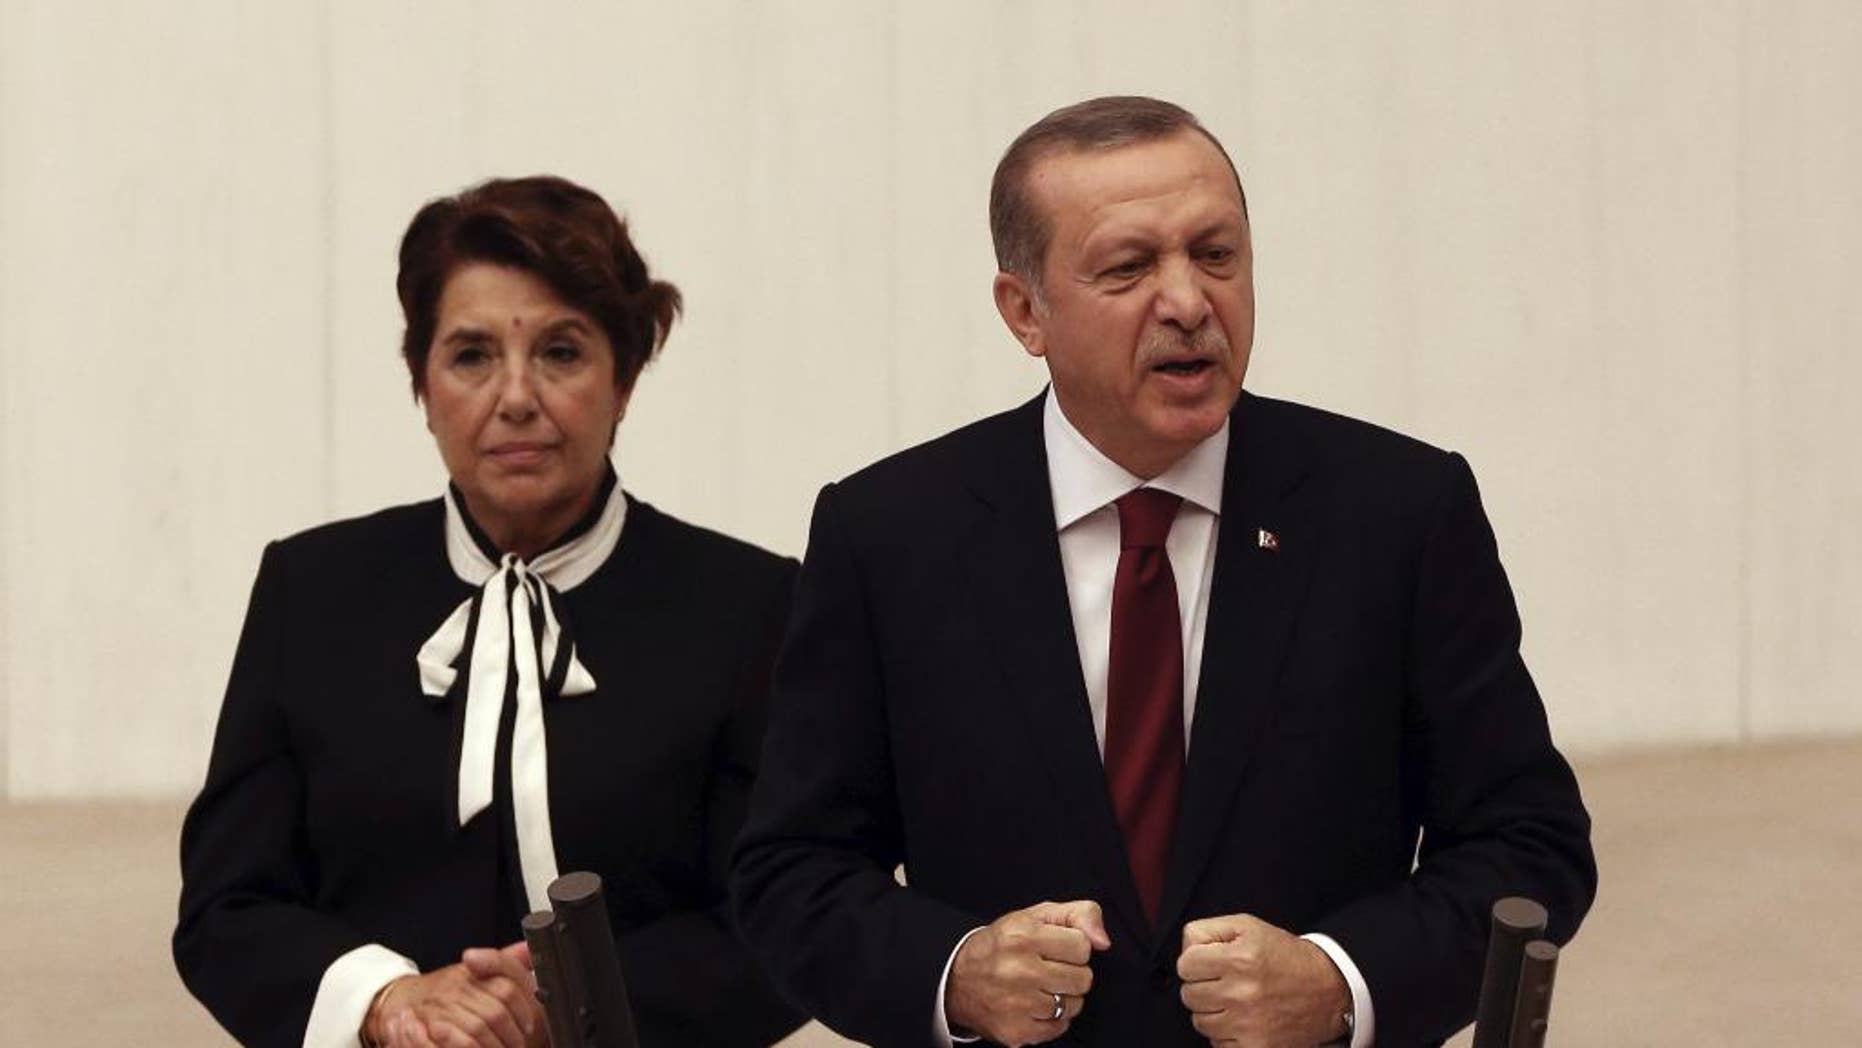 Turkey's President Recep Tayyip Erdogan addresses the parliament in Ankara, Turkey, Saturday, Oct. 1, 2016. Erdogan hinted on Thursday that the three-month state of emergency declared following the failed July 15 coup could be extended to over a year. Aysenur Bahcekapili, a lawmaker from the ruling Justice and Development Party, stands during his speech. (AP Photo/Burhan Ozbilici)